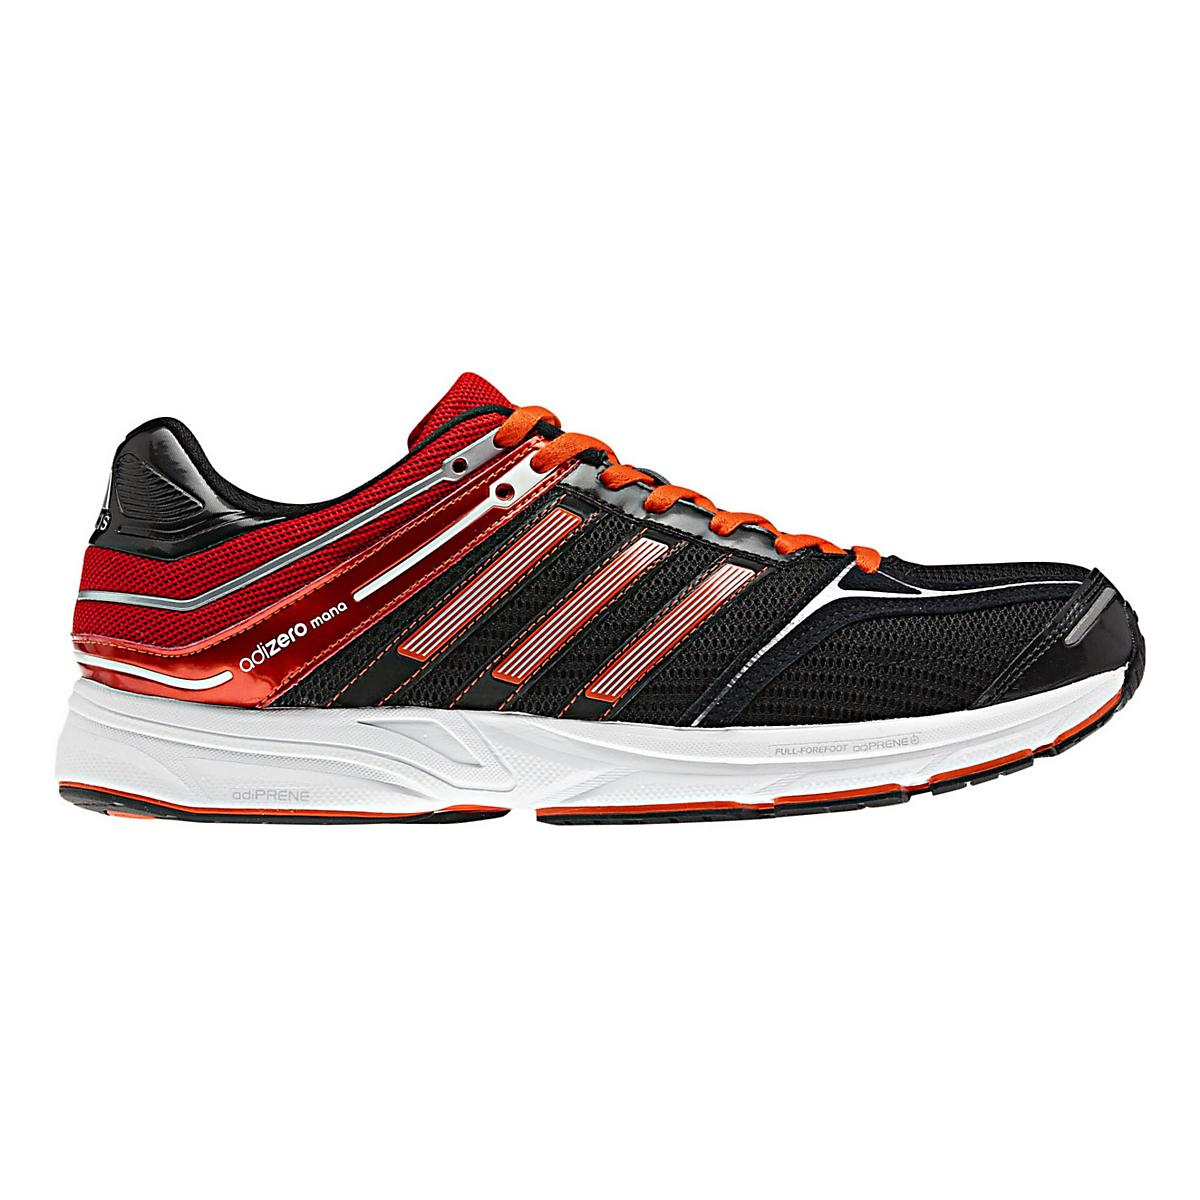 ee778e508a2 Mens adidas adiZero Mana 6 Racing Shoe at Road Runner Sports